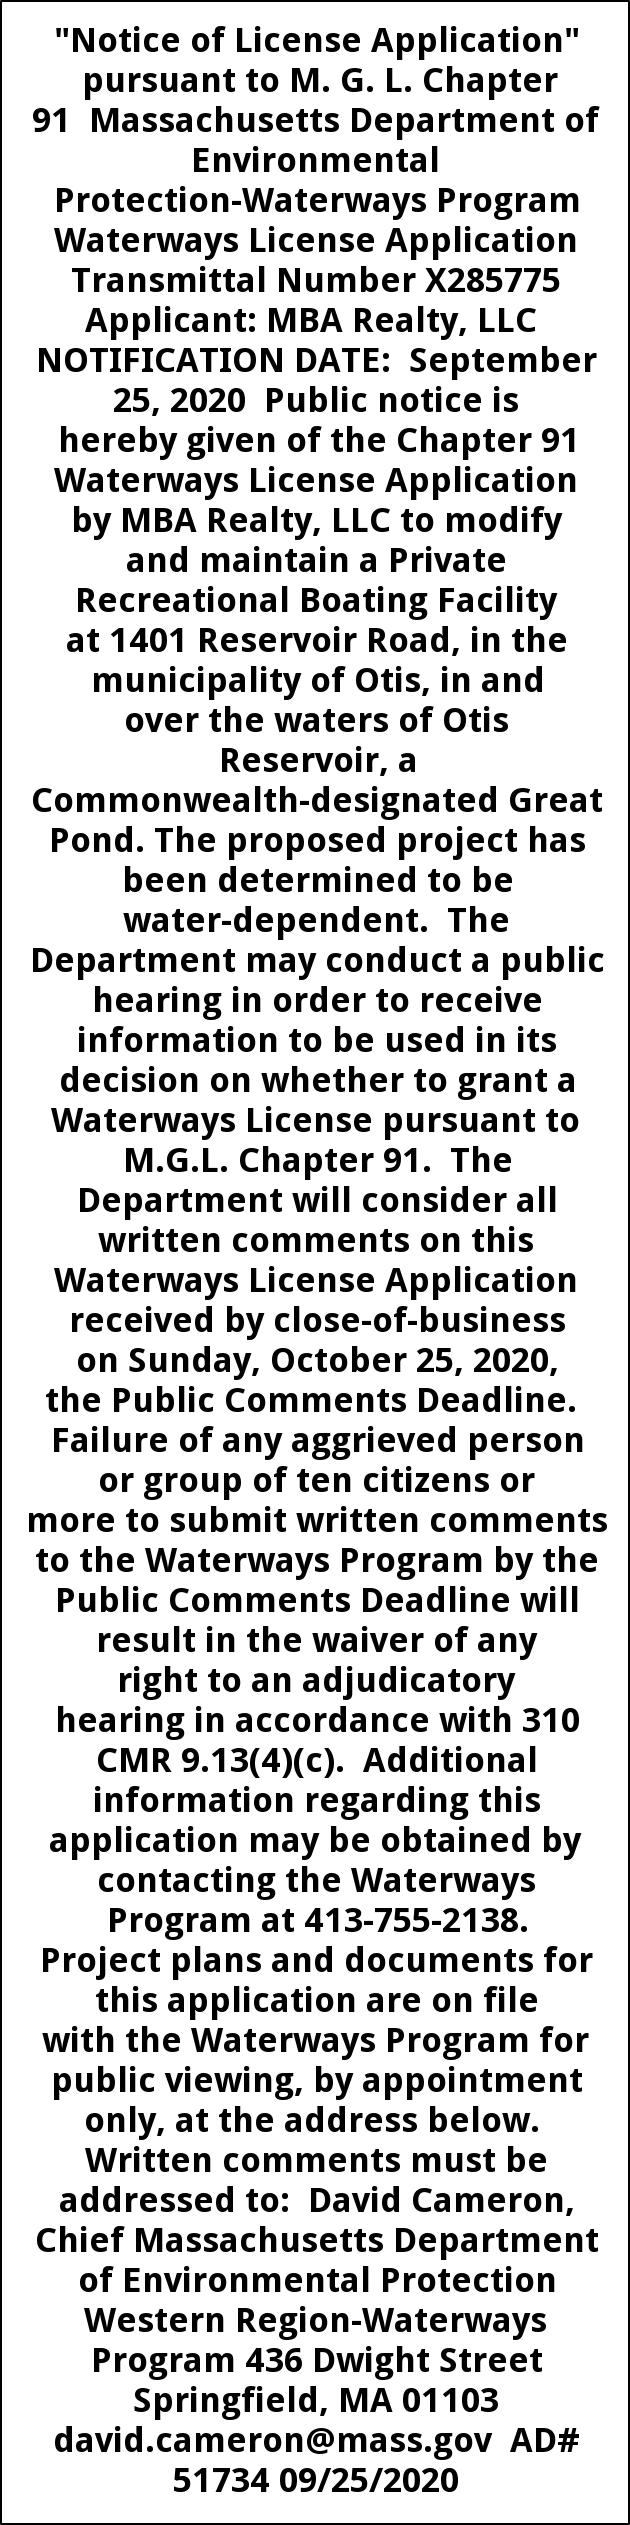 Notice of License Application